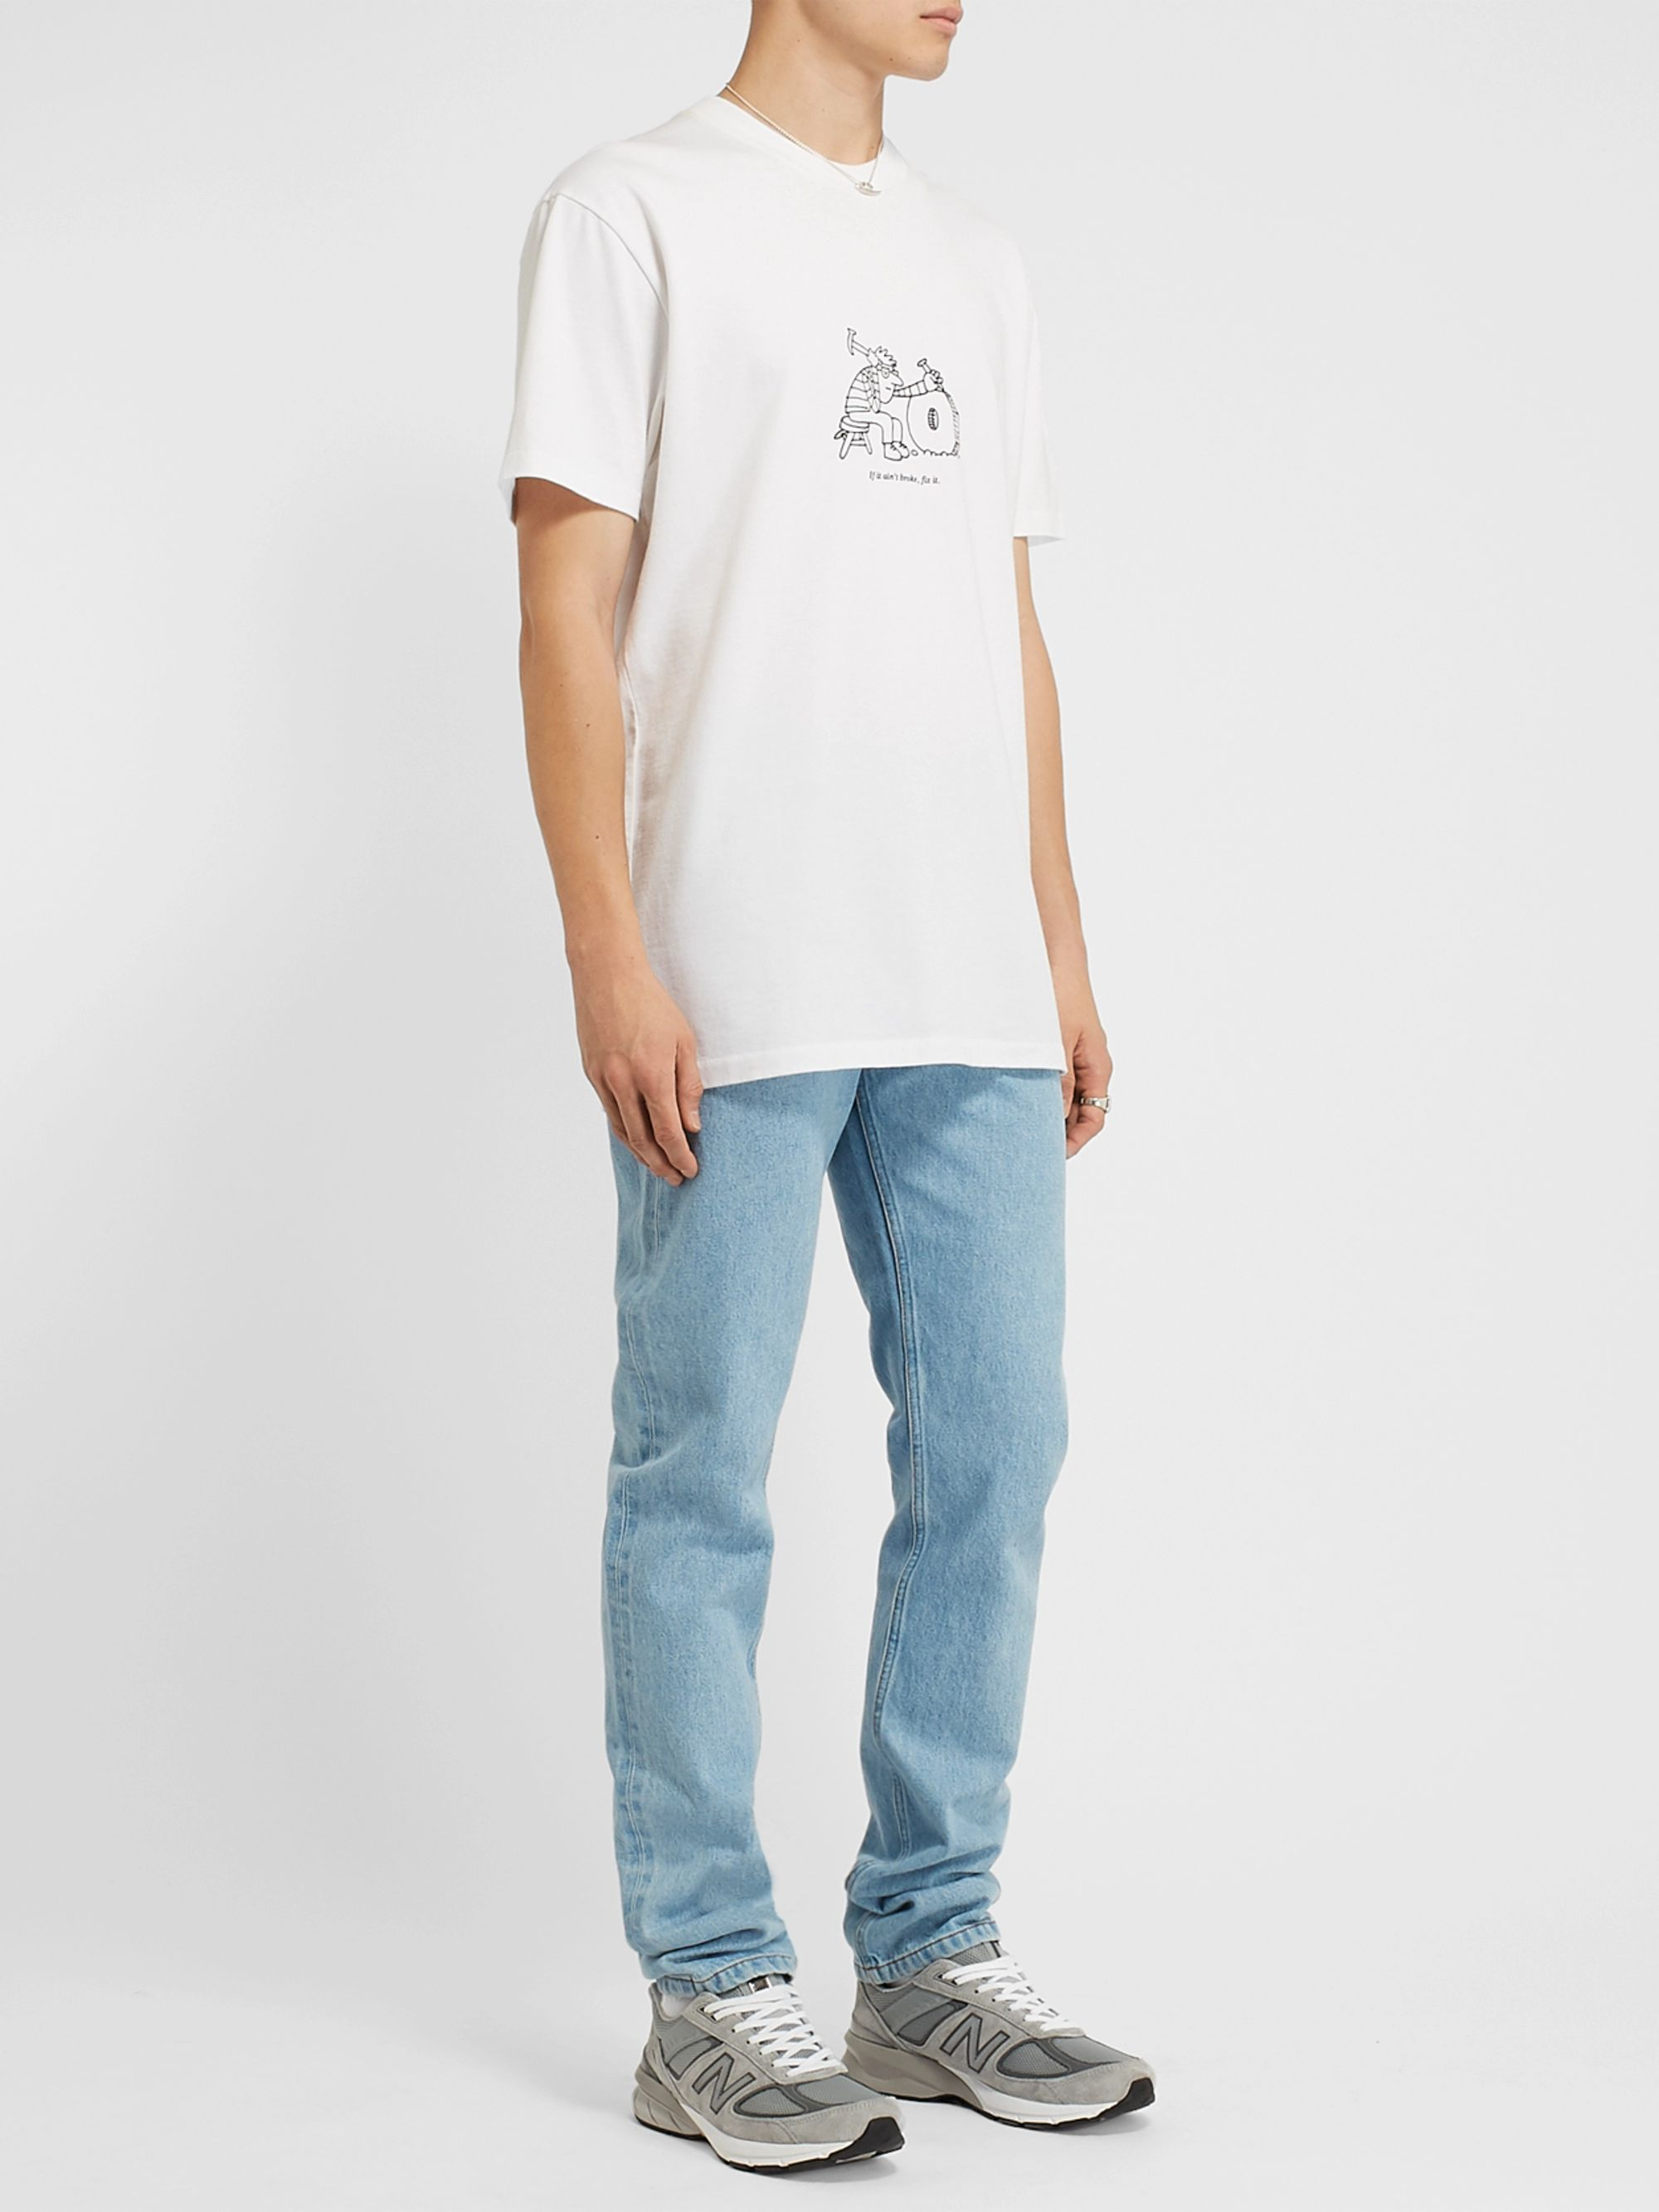 A.P.C. + JJJJound Petit Standard Slim-Fit Embellished Denim Jeans